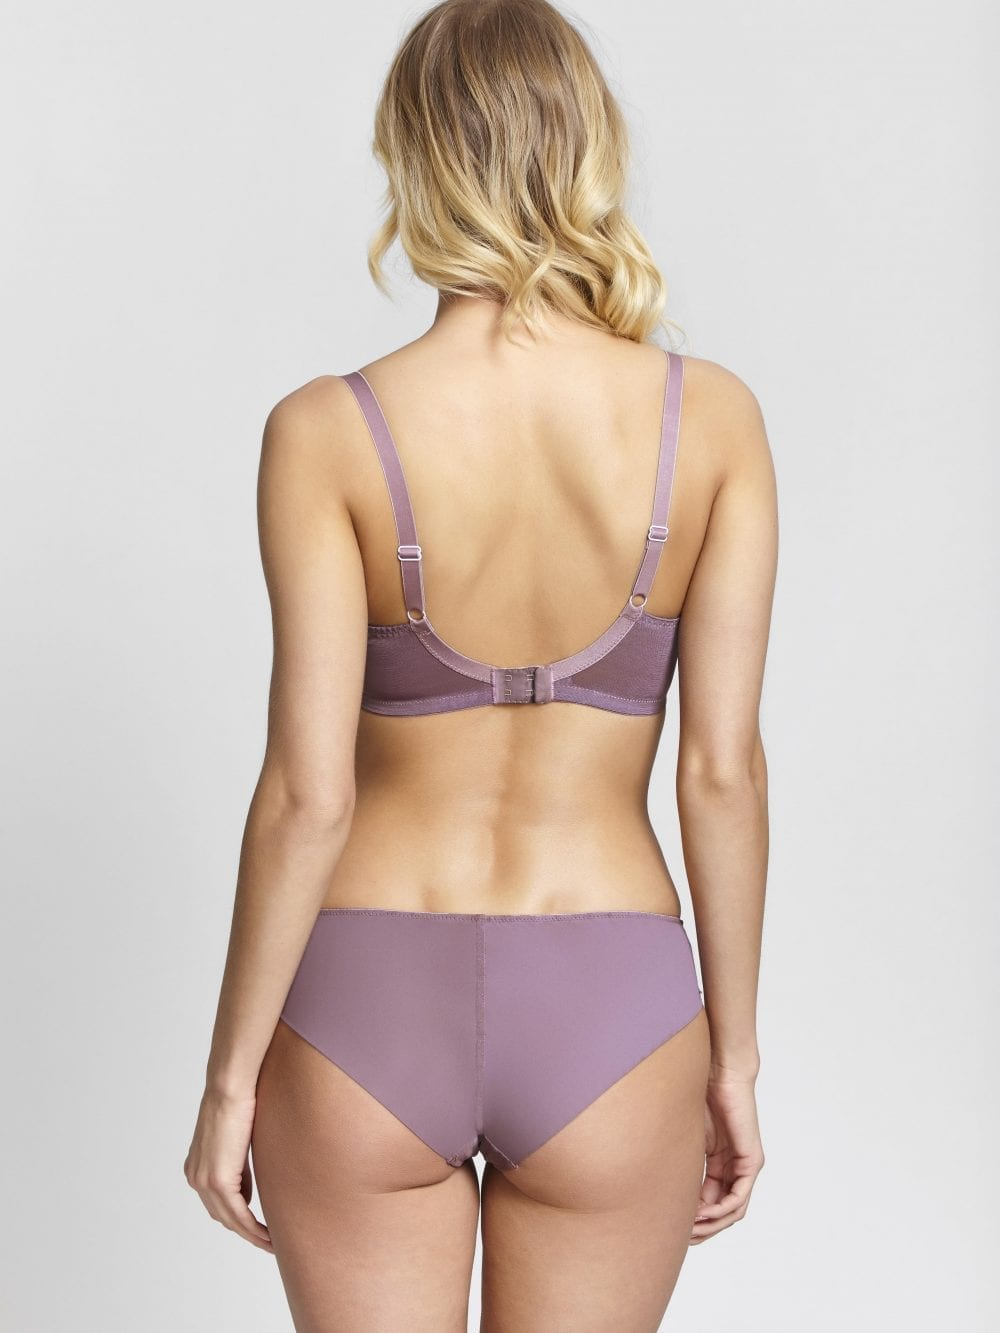 Бюстгальтеры 6591_854_Lois-Balconnet-Bra-Mauve-Mist-Back-Trade-4-1000×1333